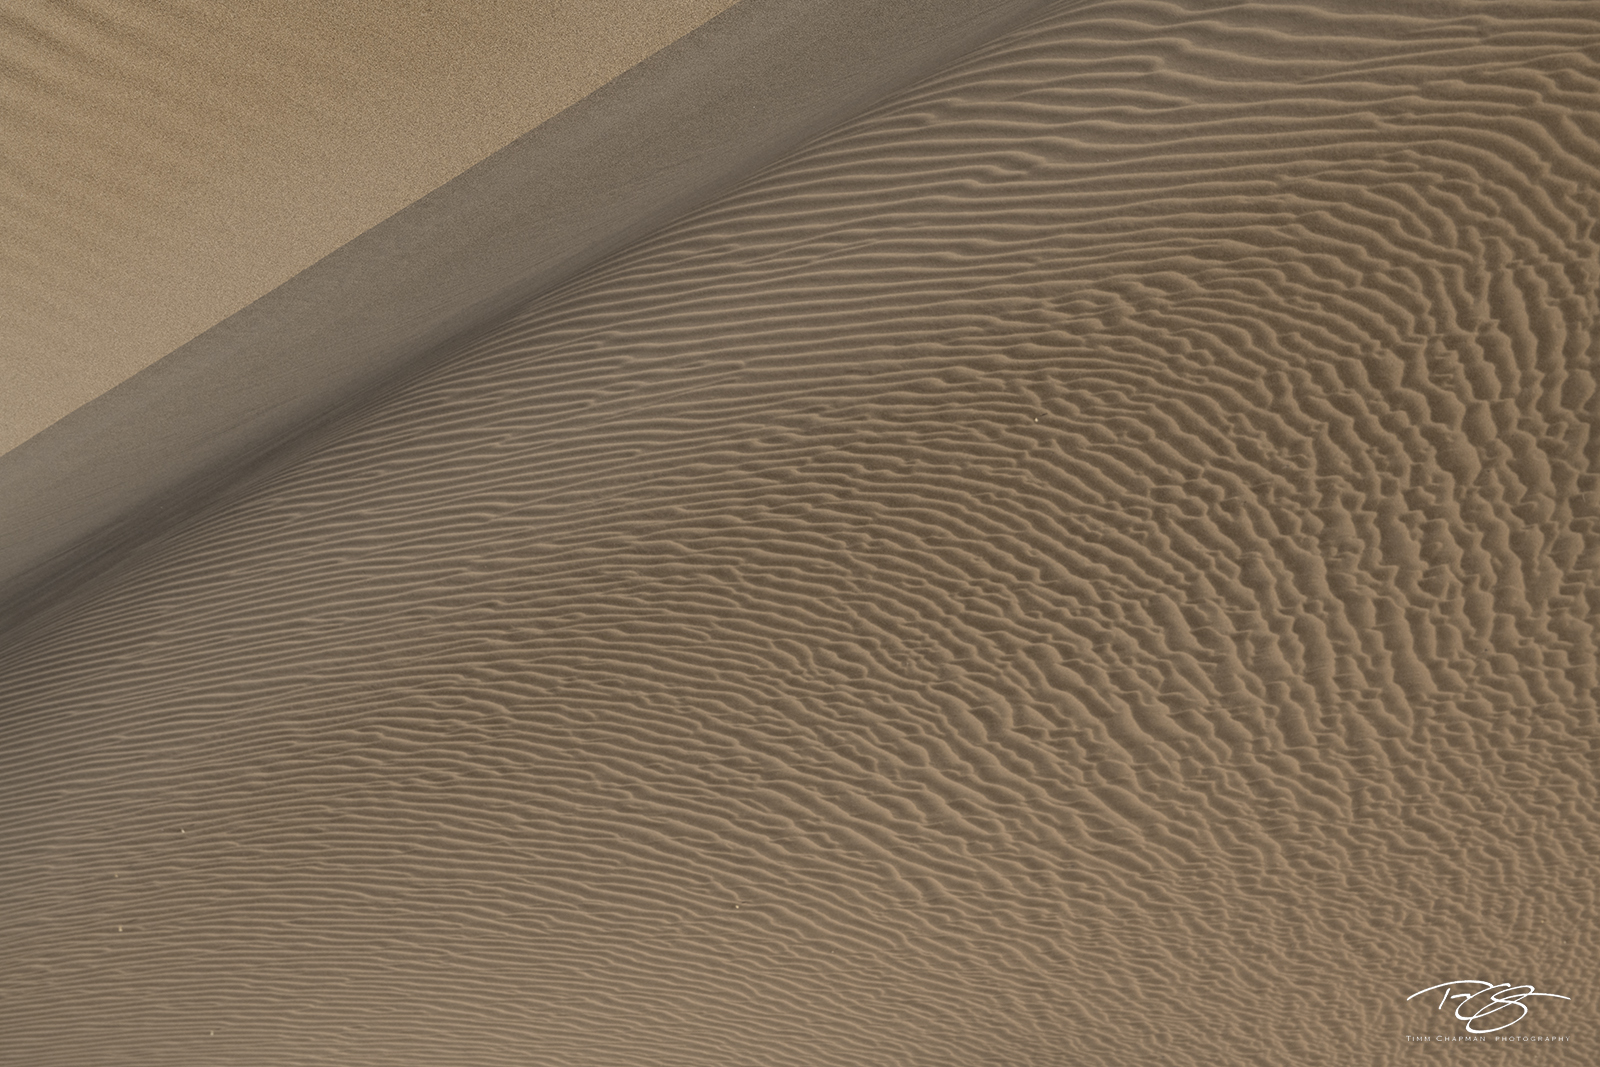 gobi desert, china, abstract, patterns, sand dune, sand, dune, desert, sandscape, gobi